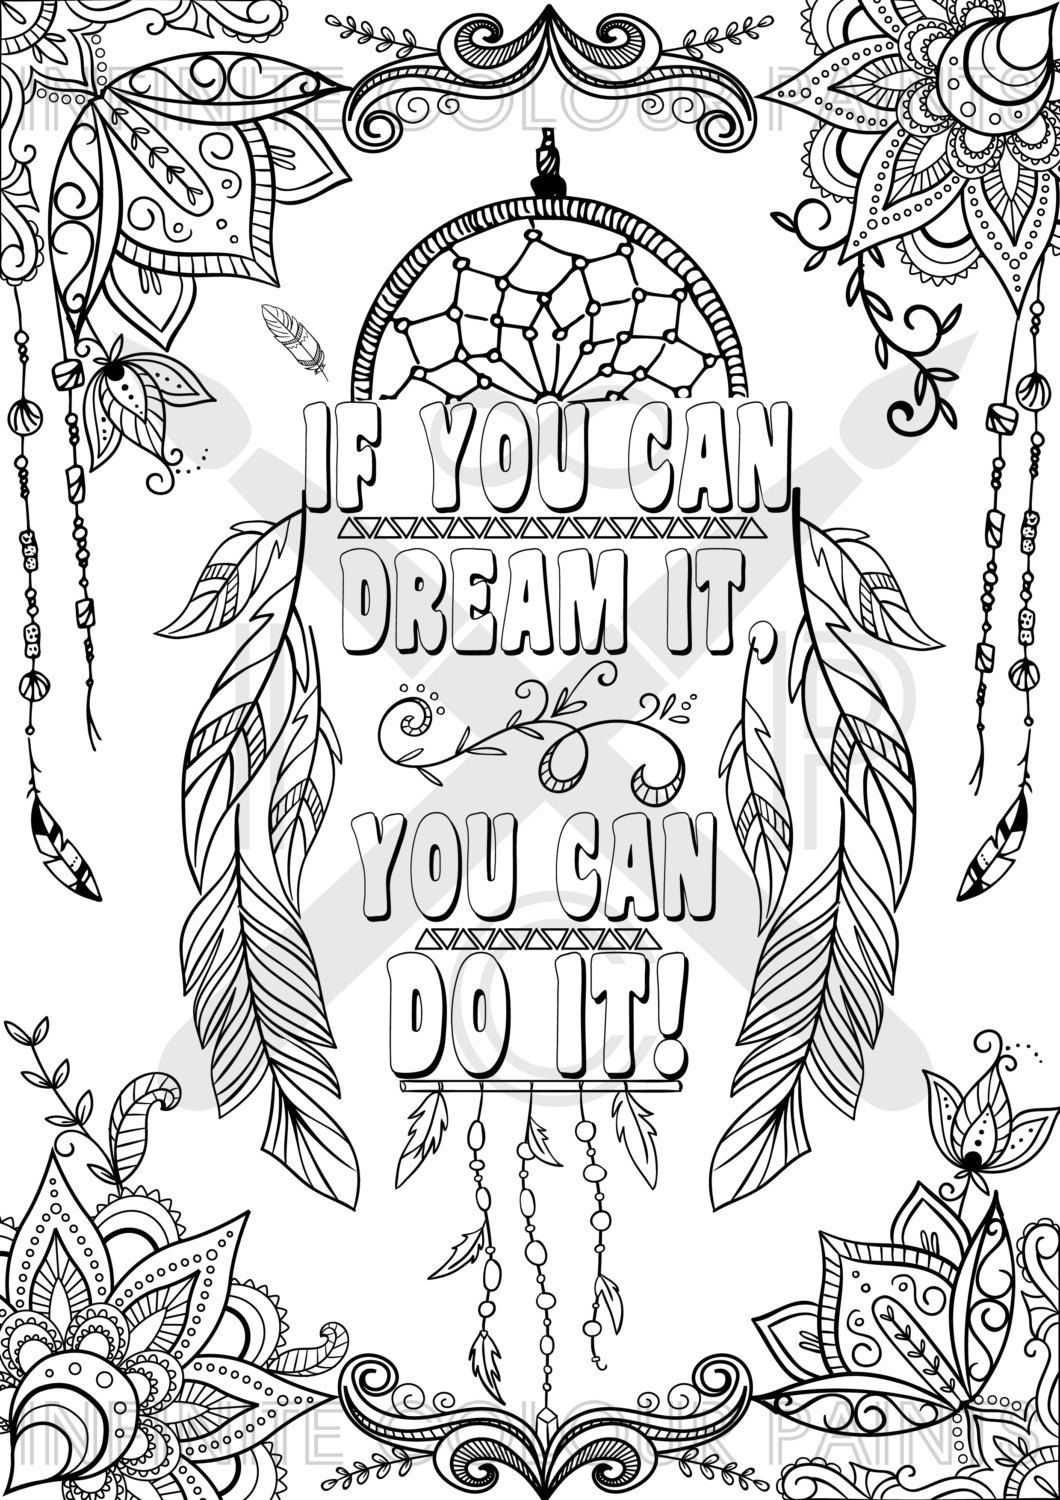 Printable coloring pages for adults with quotes - Coloring Page Adult Coloring Coloring Book Printable Coloring Page Zentangle Coloring Page Motivational Poster Dreamcatcher Motivation Quote